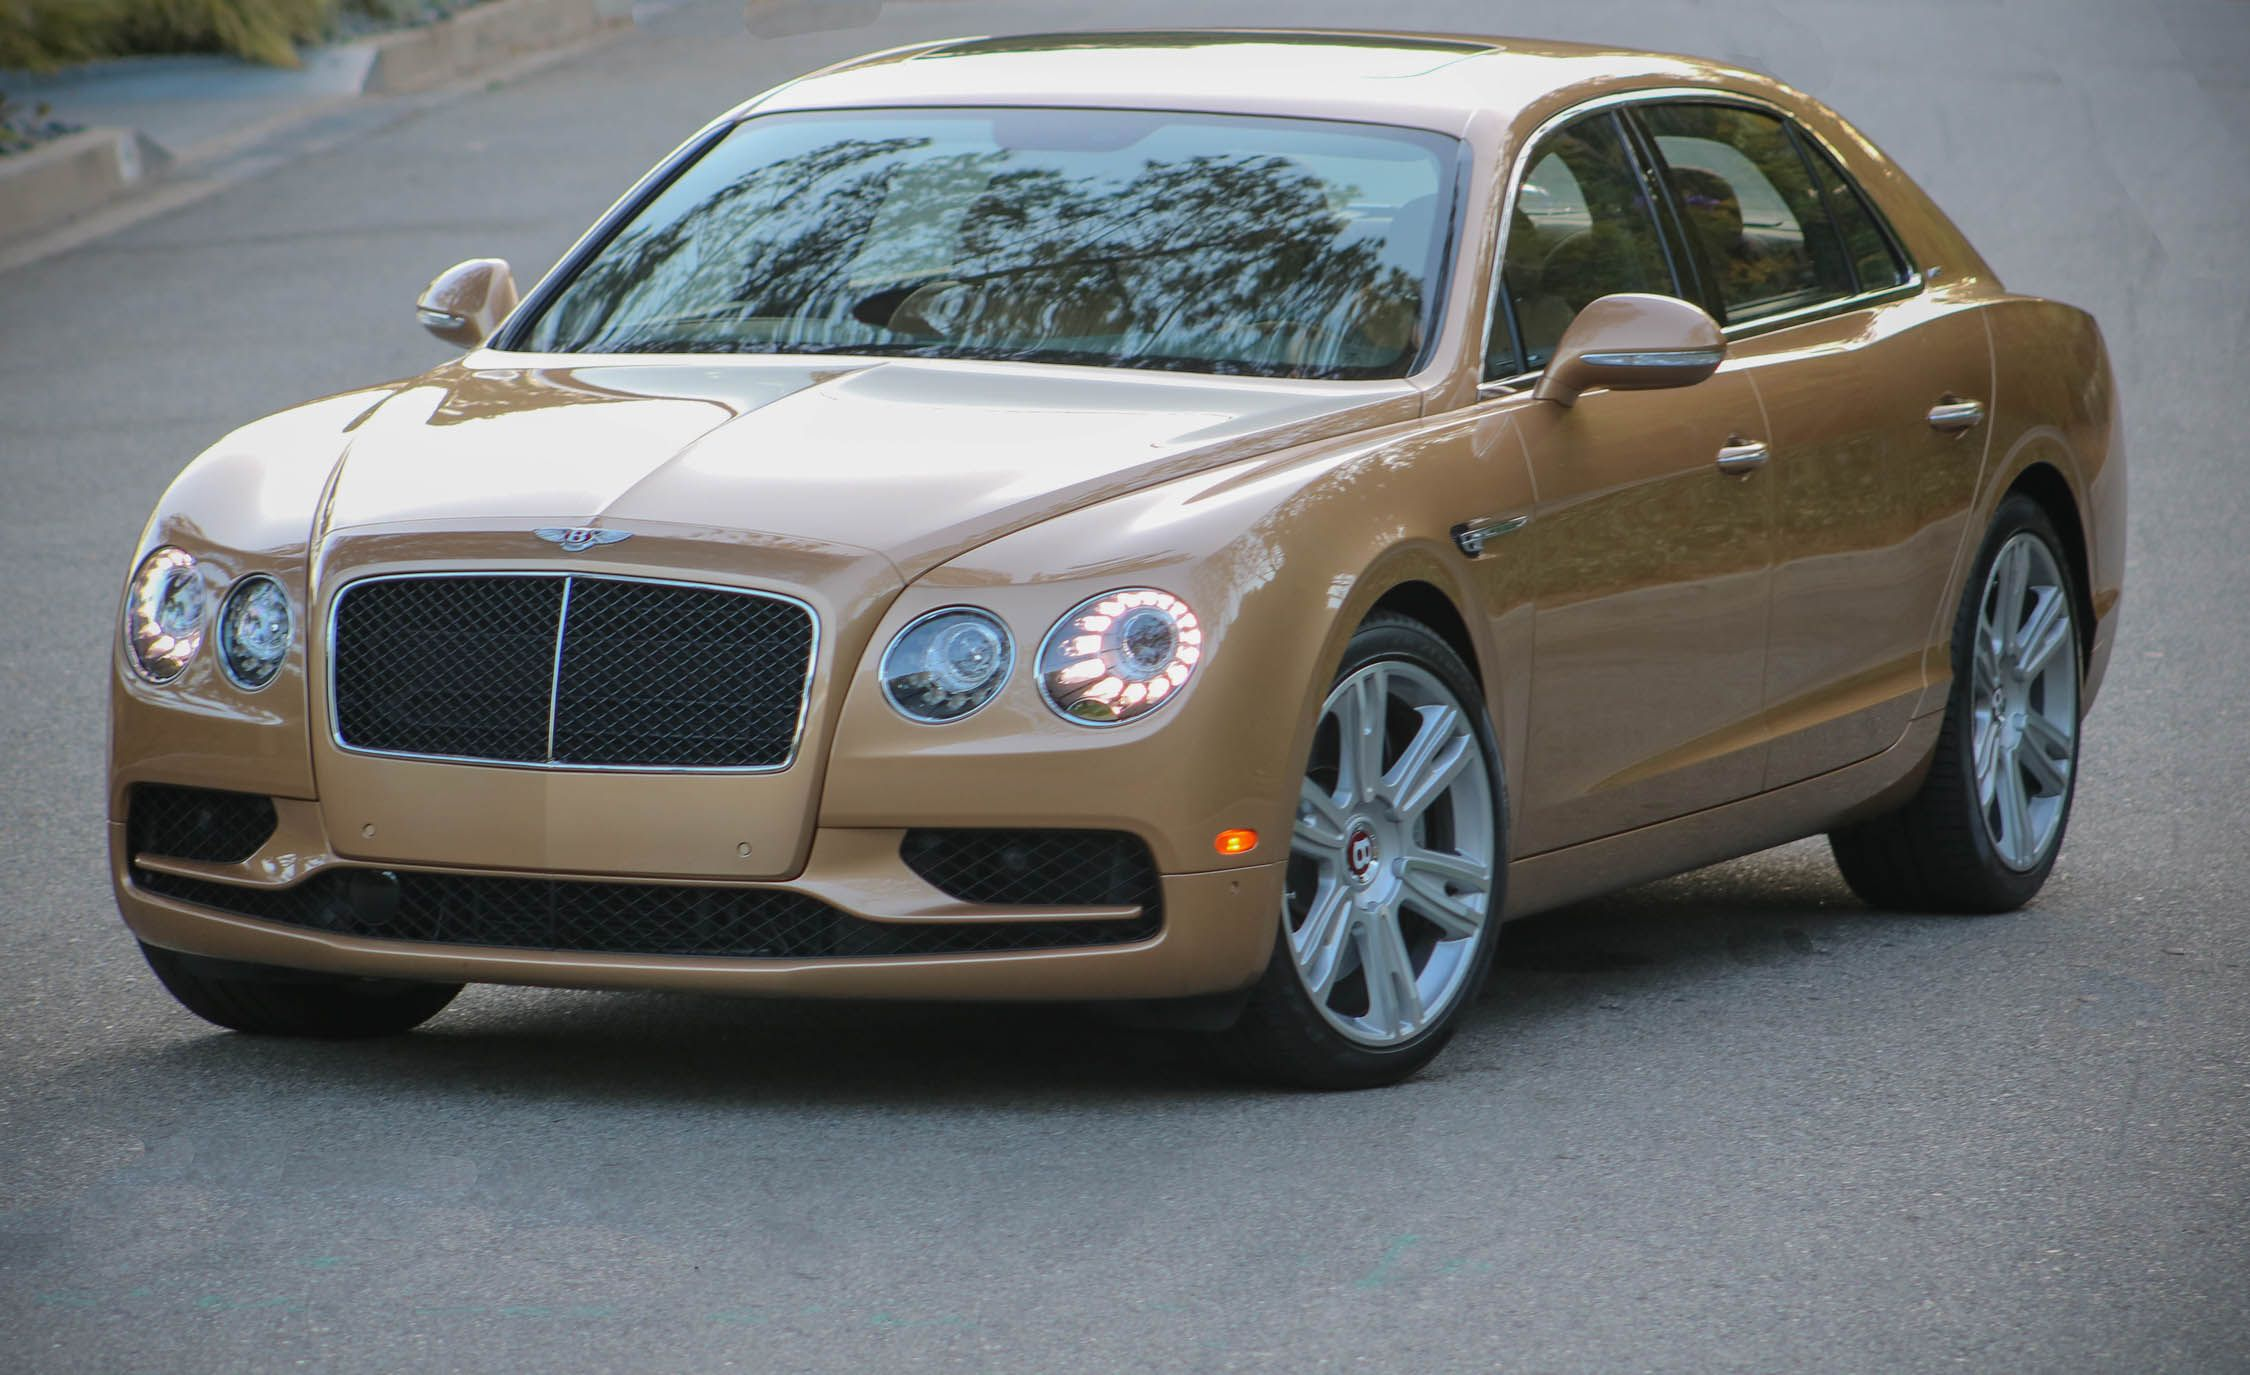 ga for sale alpharetta new htm slideshow html flying powered door in sedan atlanta bentley by magic spur price bl toolbox